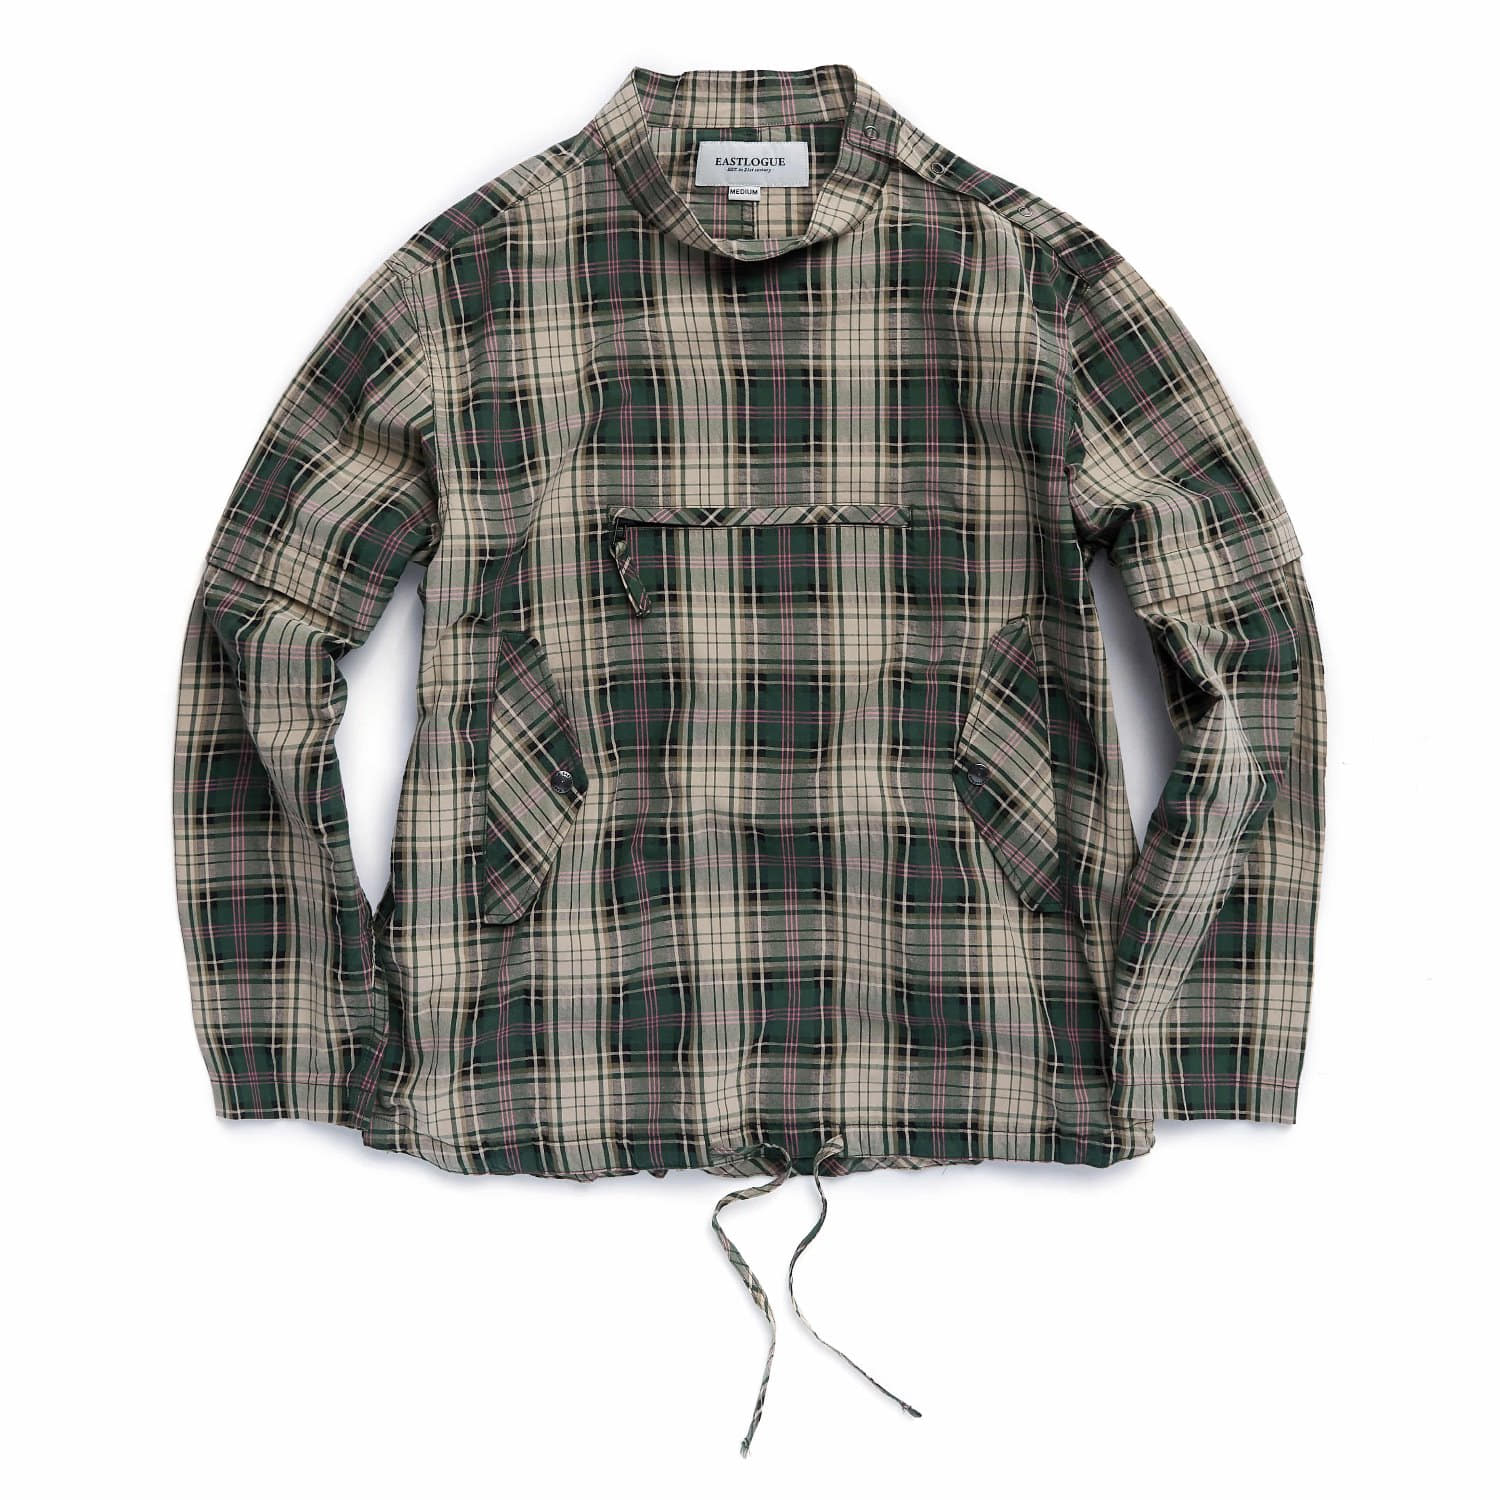 Eastlogue Smock Shirts (Green Multi Check)